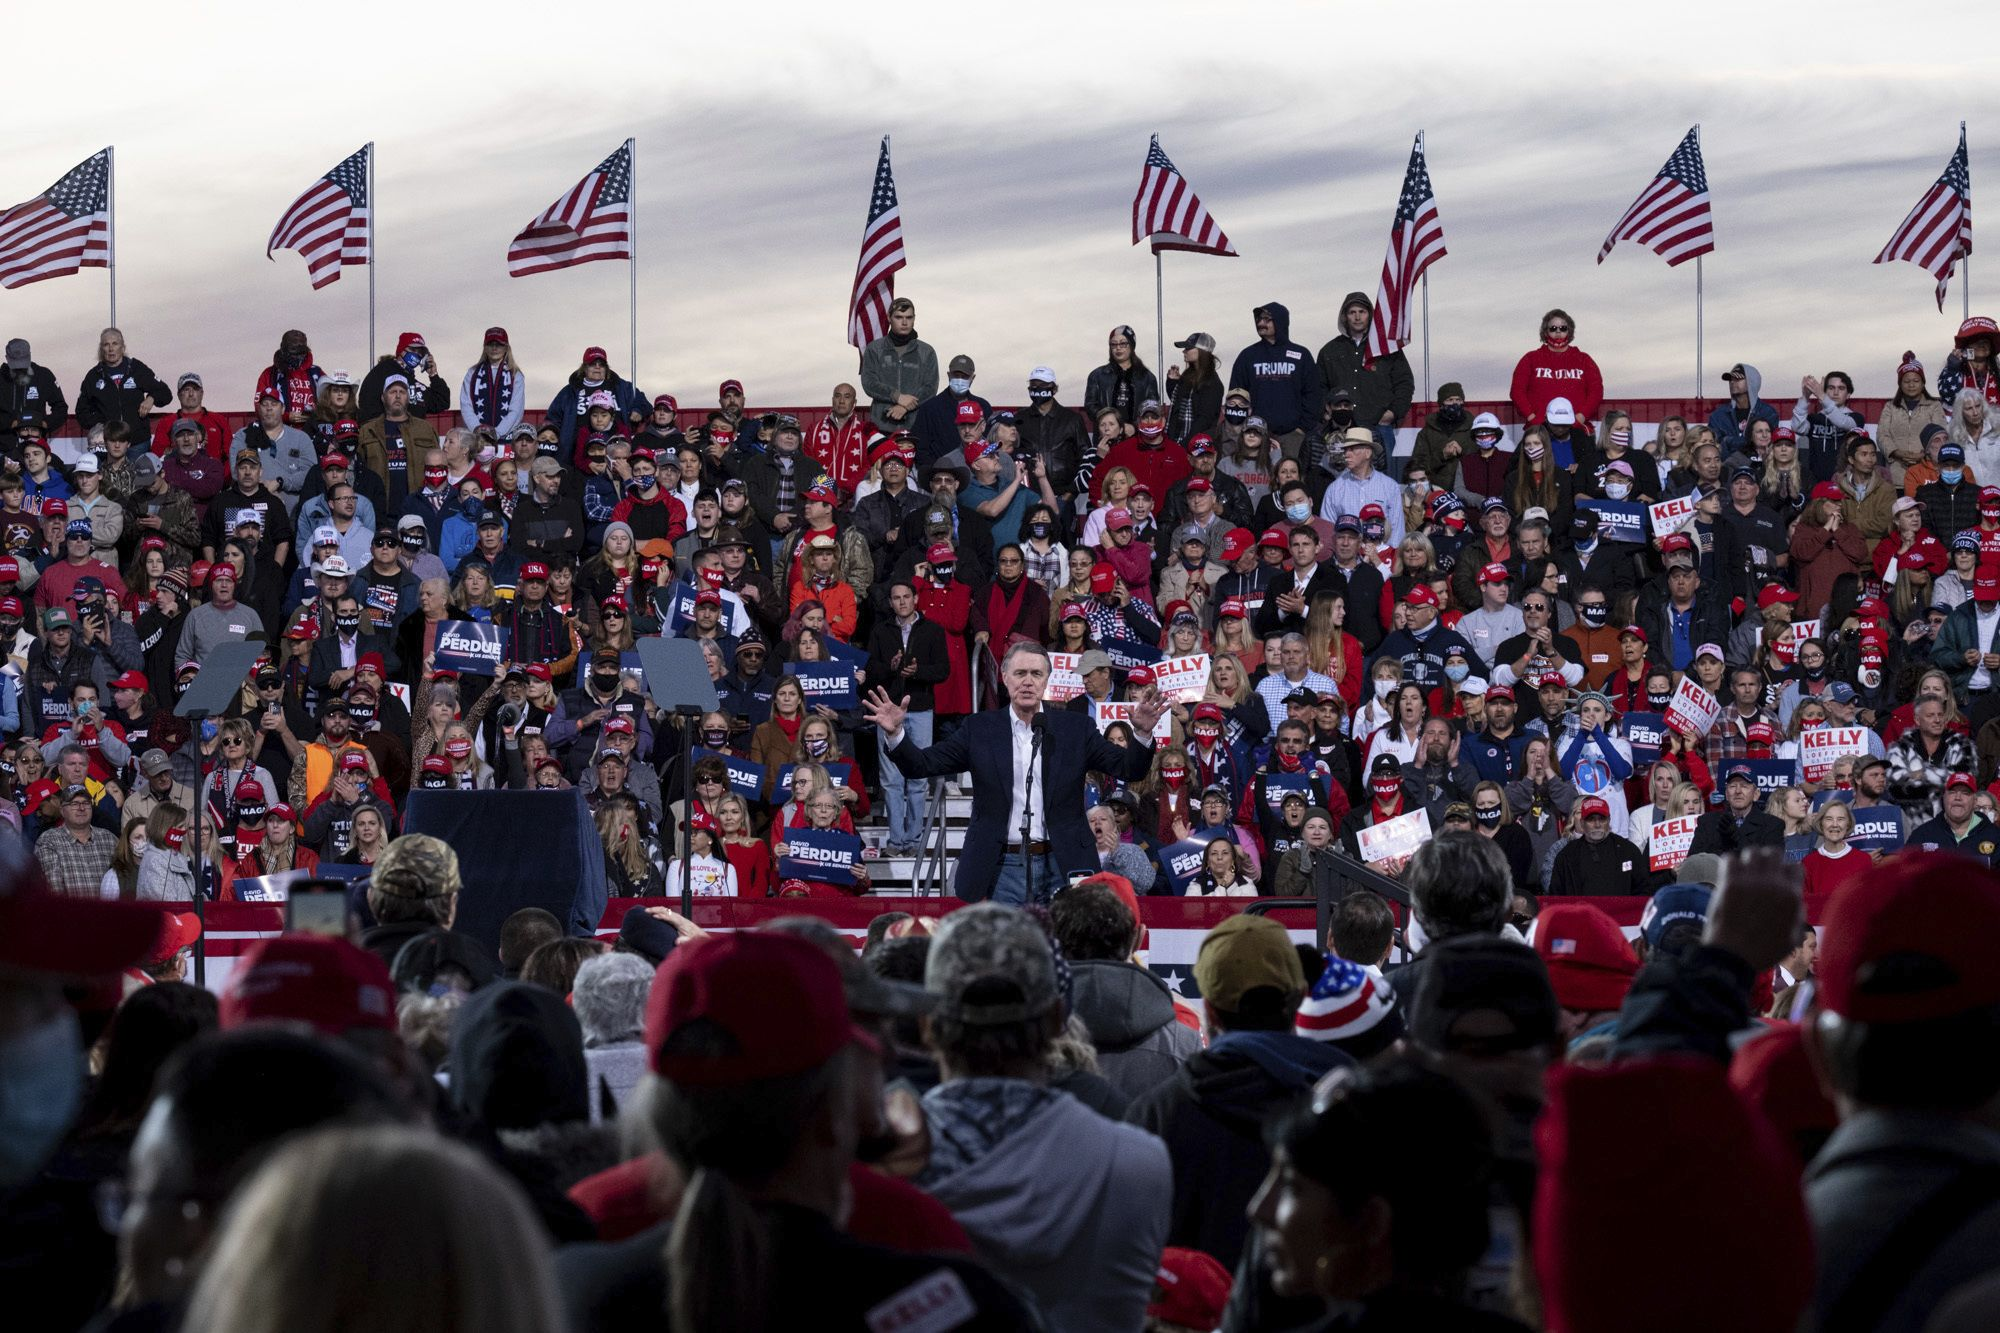 The Latest: Trump urges backers to 'take revenge' by voting